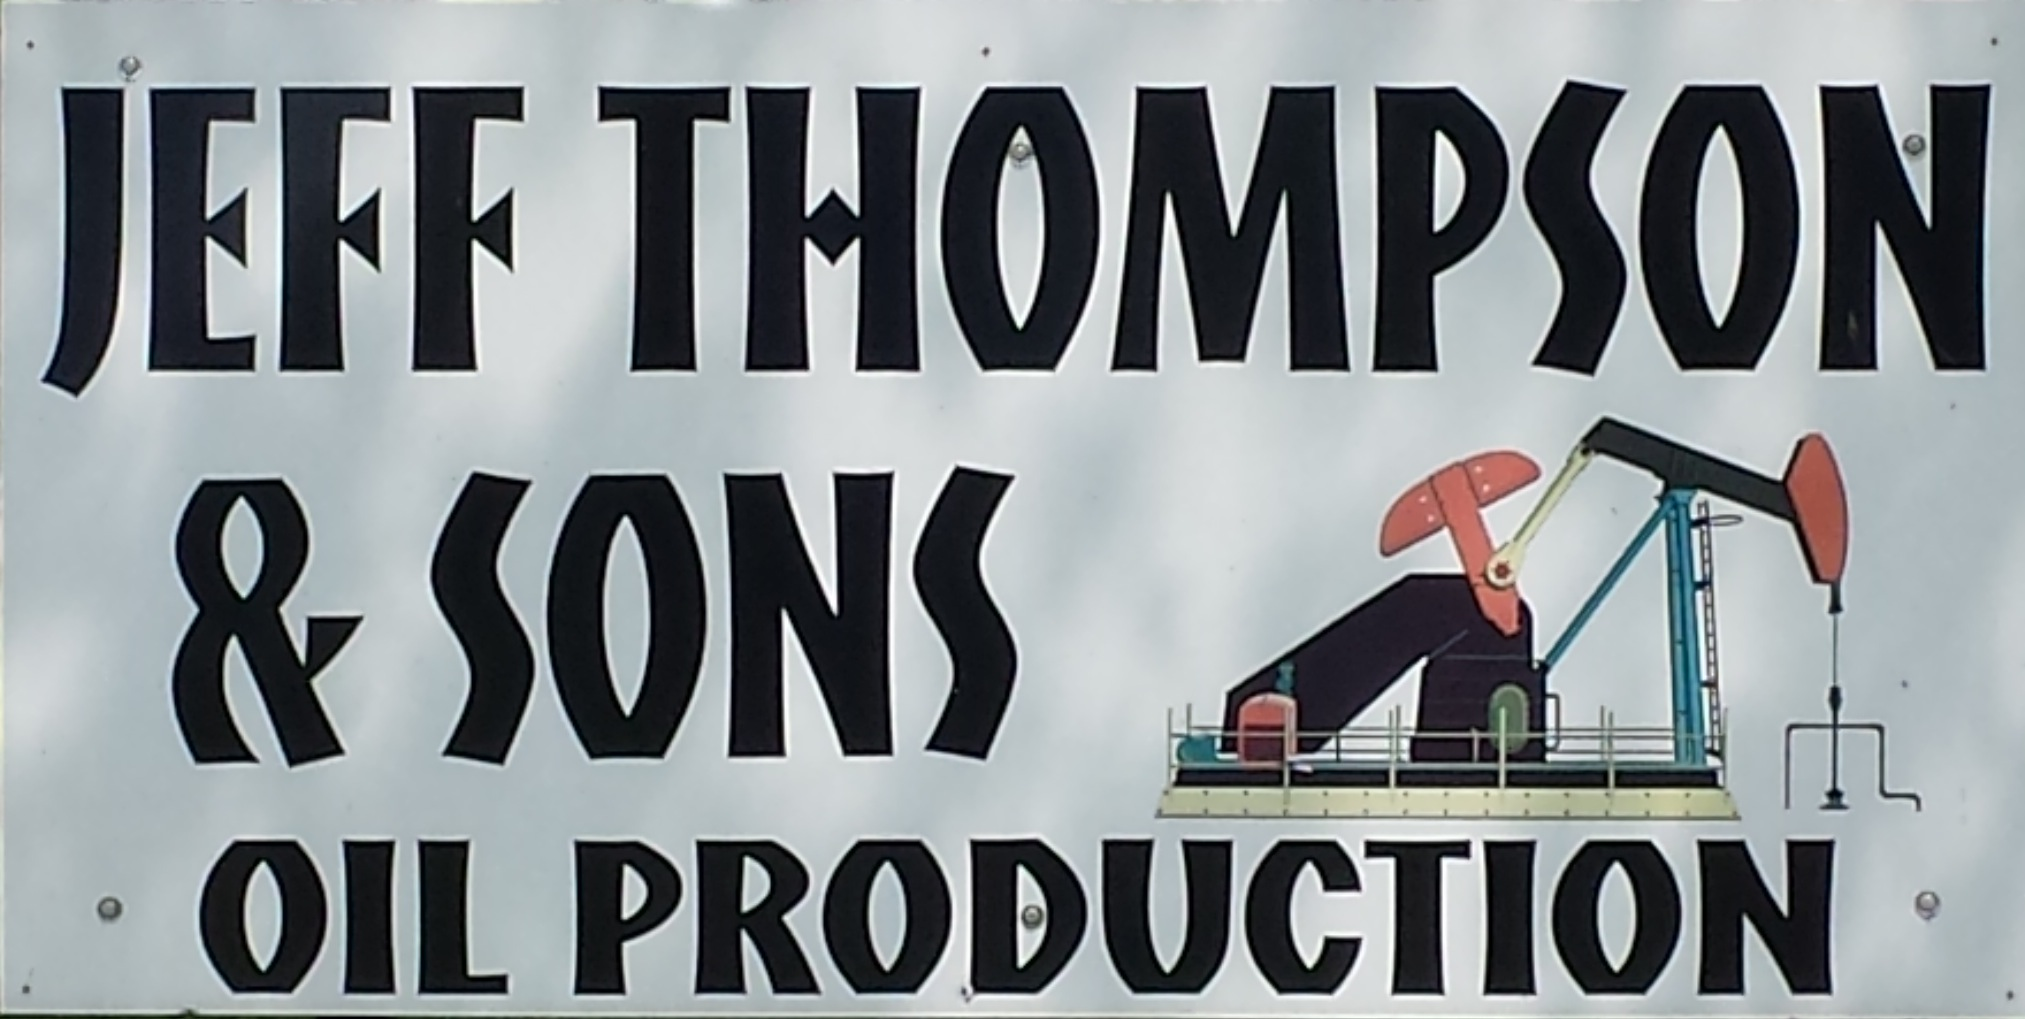 Jeff Thompson and Sons Oil